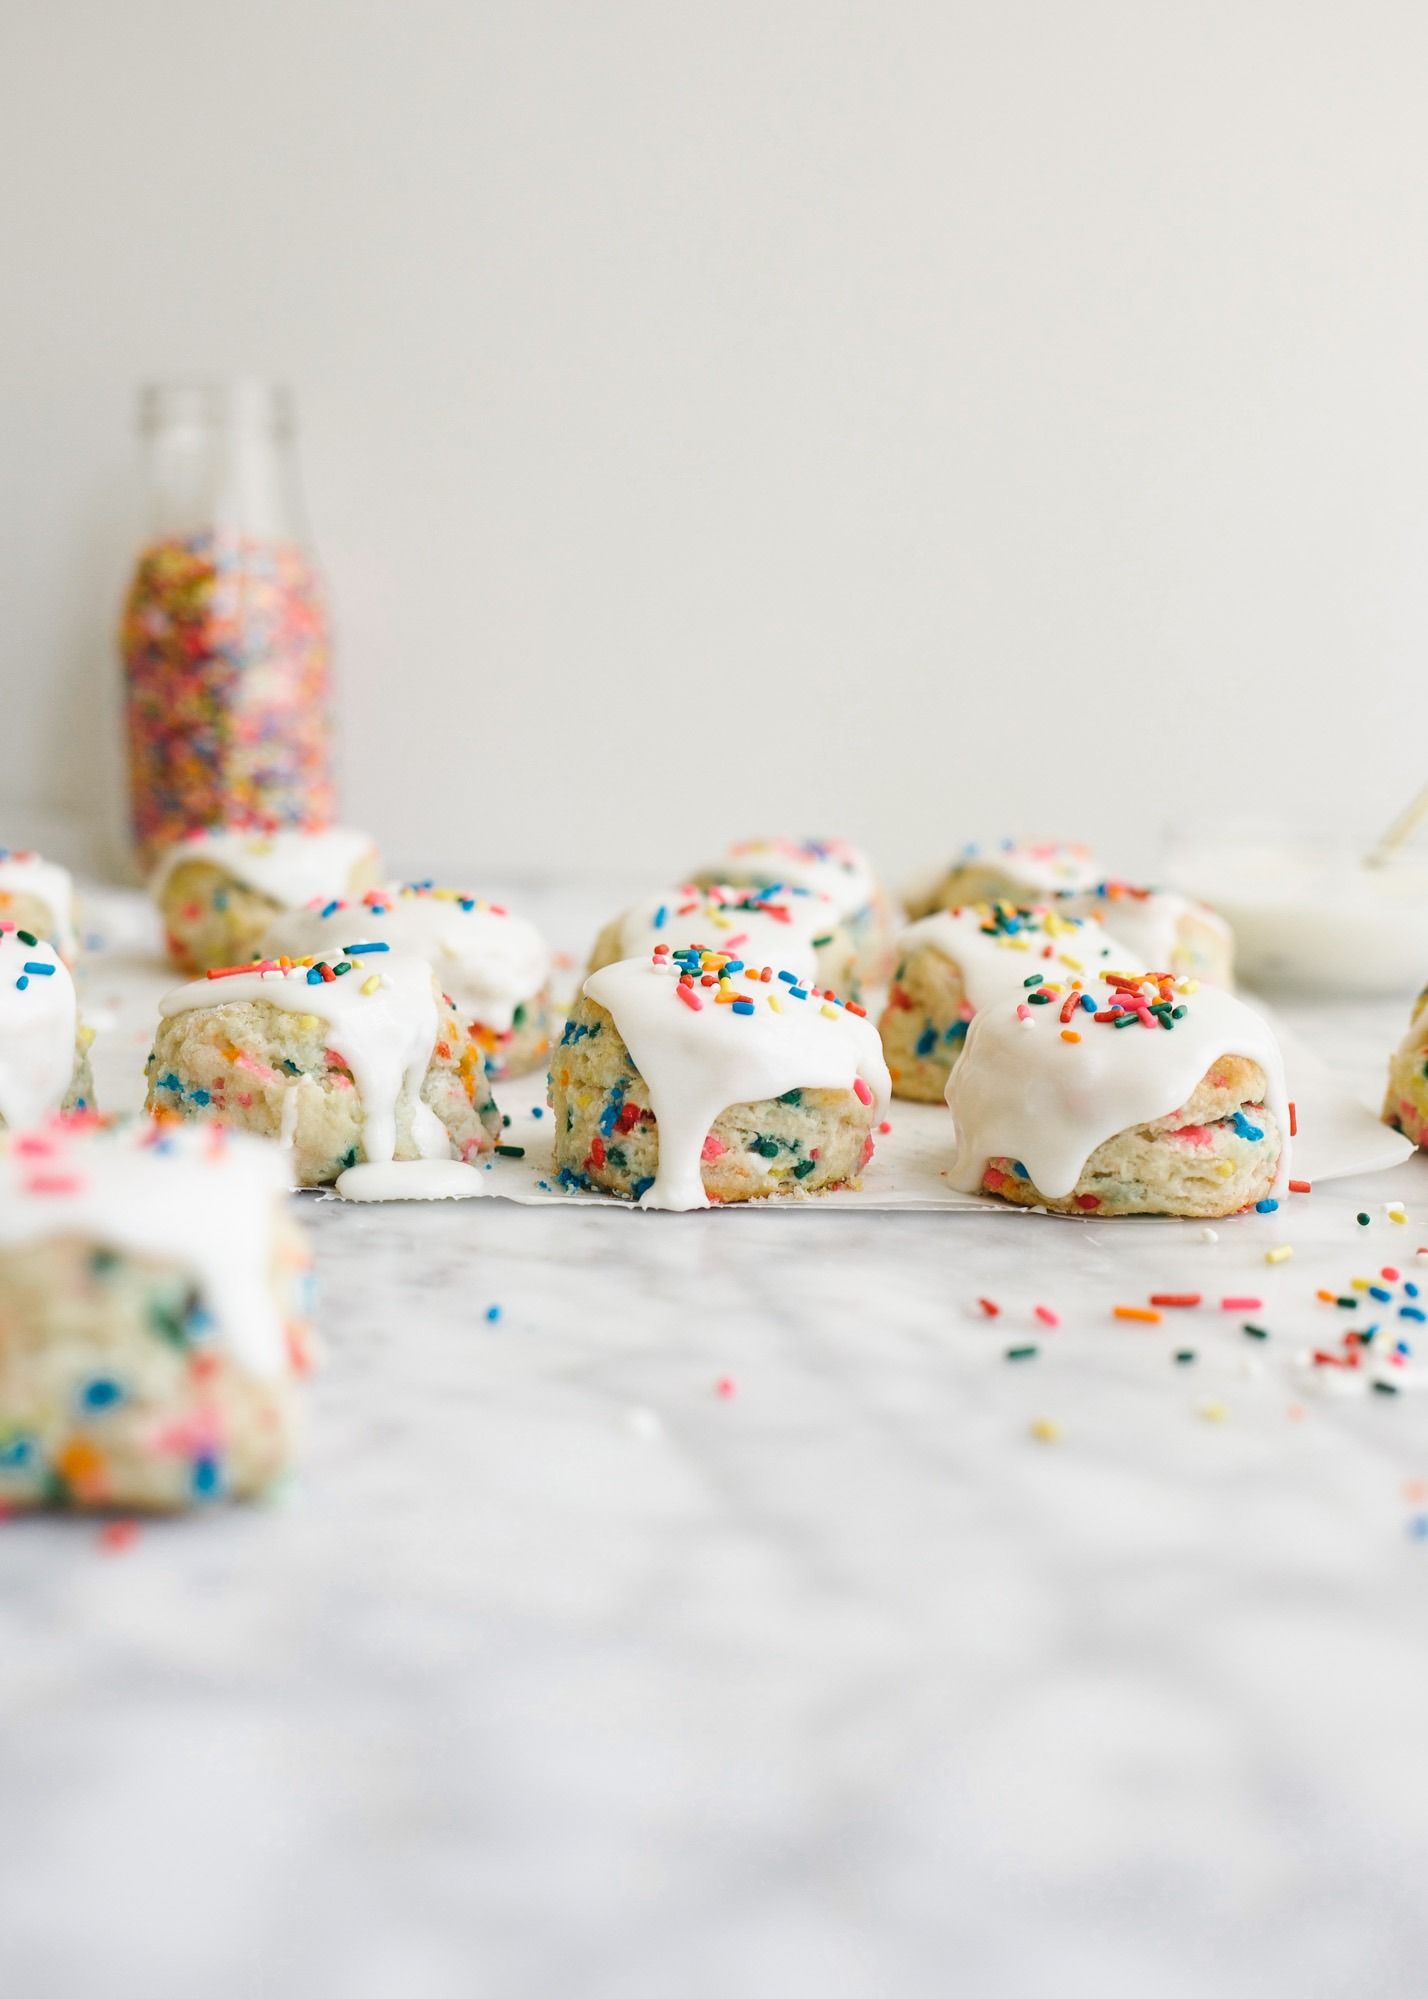 Funfetti Biscuits by Wood and Spoon blog. These are fluffy Southern Style buttermilk biscuits loaded with sprinkles, box mix cake flavor, and topped with a sweet and simple icing. There are tons of things to put sprinkles on and these sprinkle biscuits make for a fun and festive back to school breakfast. If you're looking for fun breakfast ideas for kids, look no. further than these sweet morning biscuits! The recipe and how to is on thewoodandspoon.com